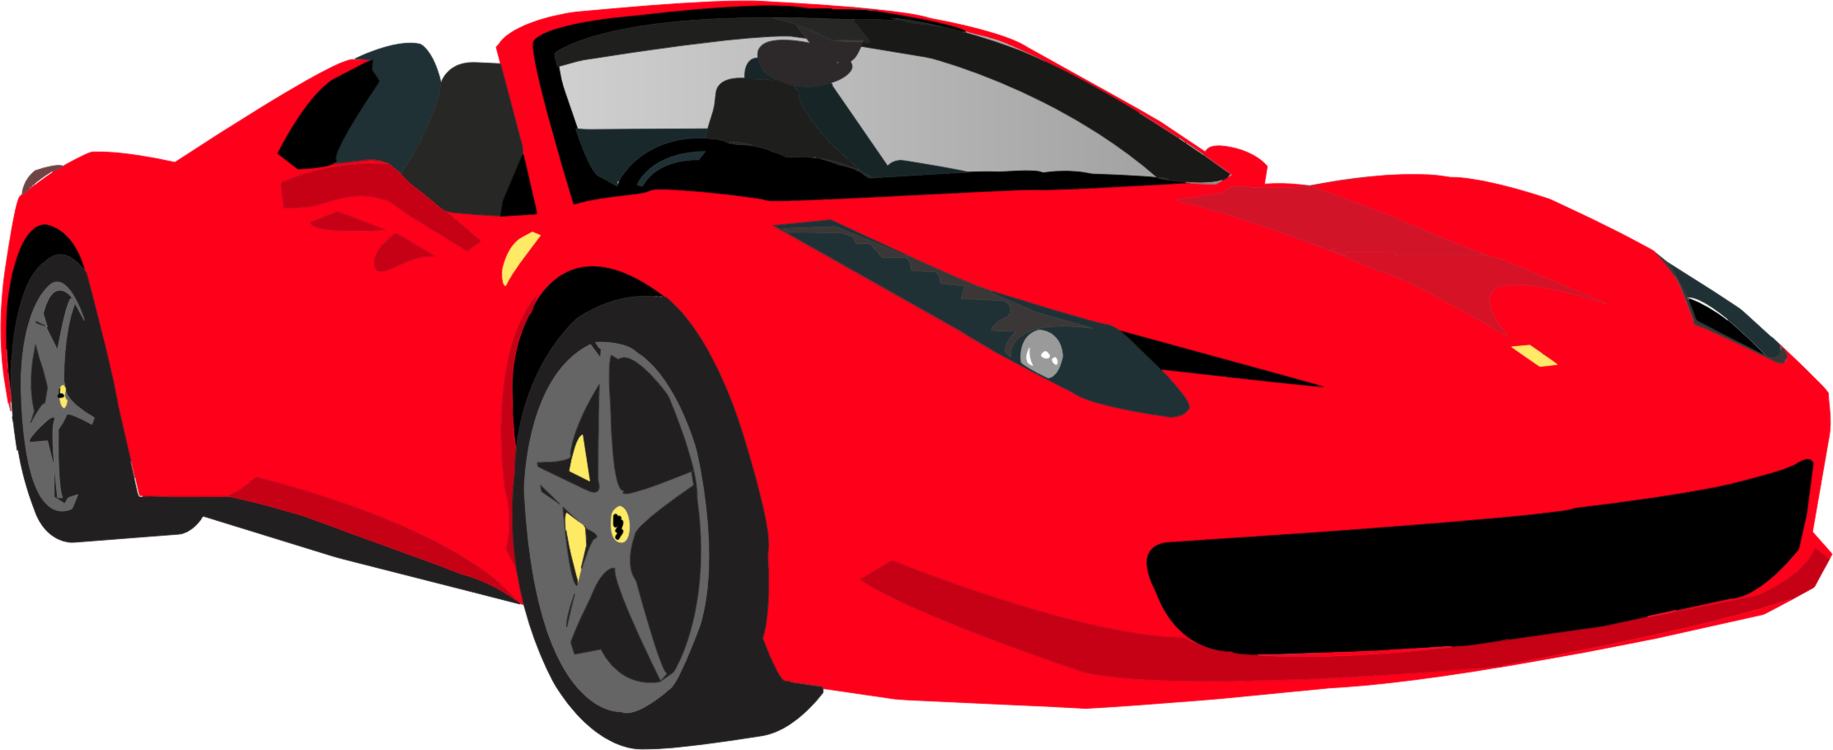 Laferrari drawing supercar. Ferrari s p a